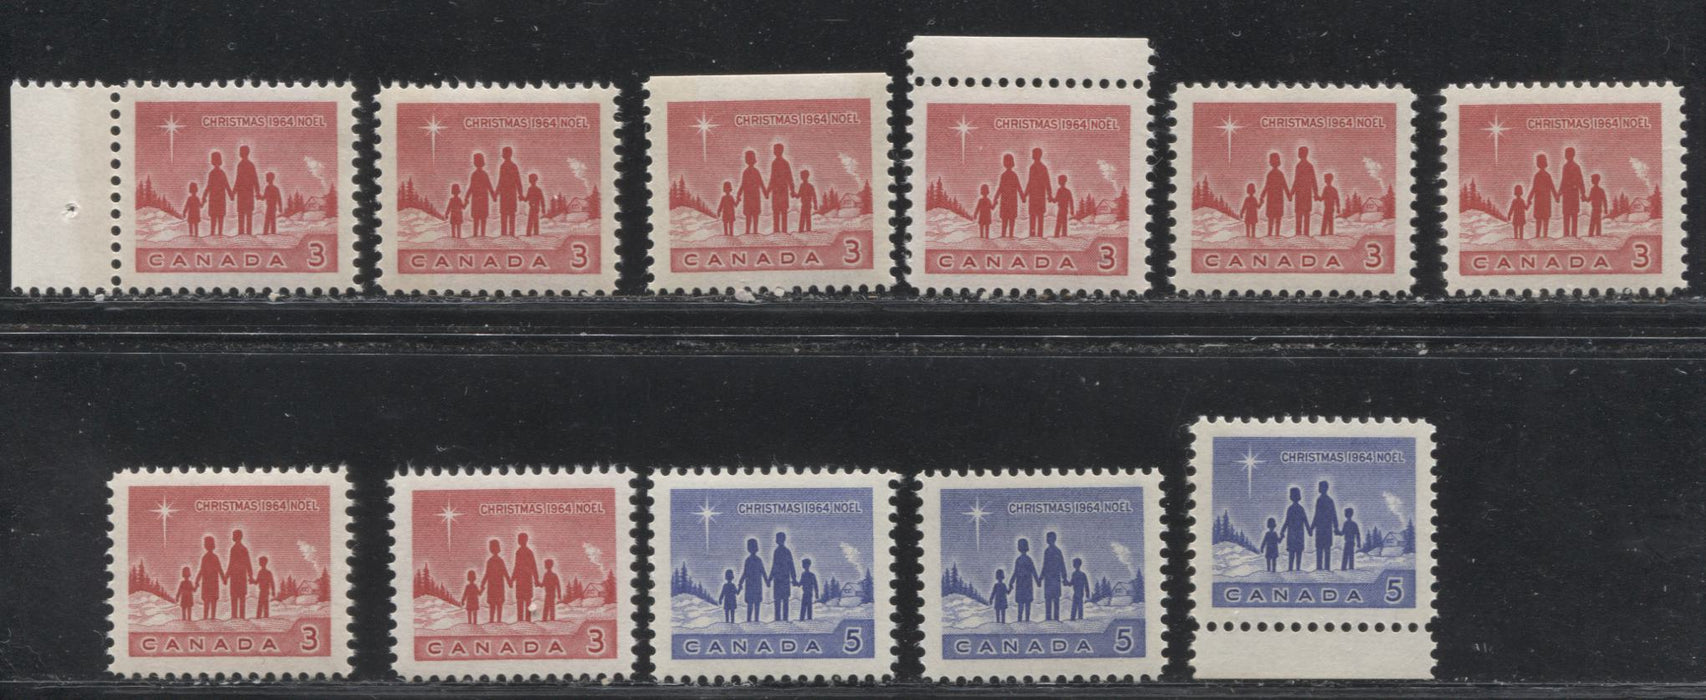 Canada #434-435piii 3c Red And 5c Blue 1964 Christmas Star Of Bethlehem Issue, A Selection of VFNH Stamps, Representing Most of the Unitrade Listed Varieties